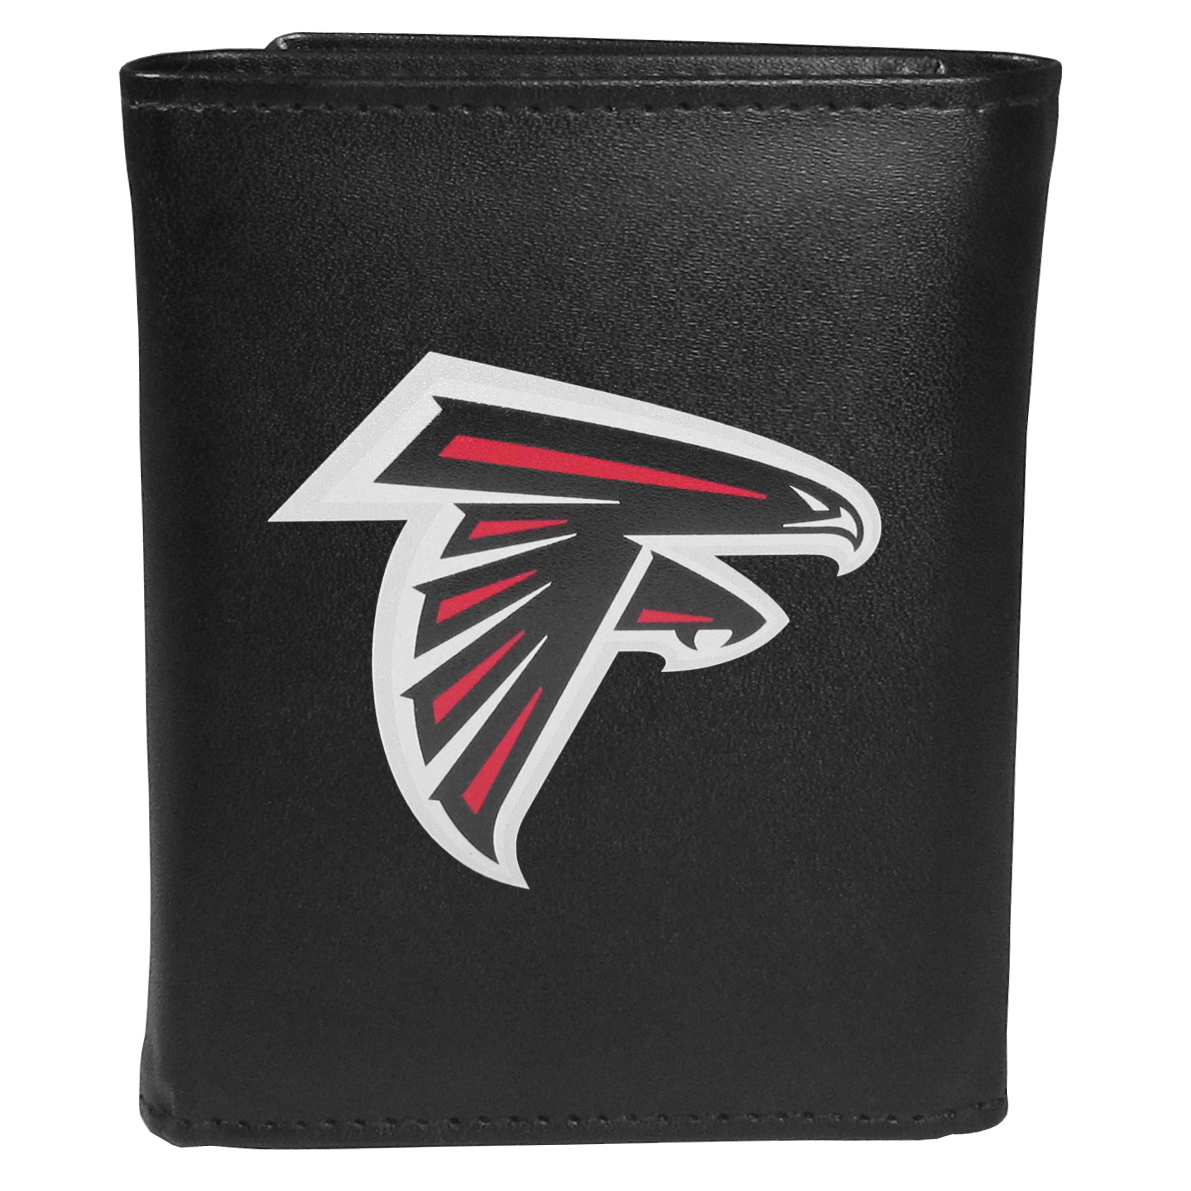 Atlanta Falcons Tri-fold Wallet Large Logo - Sports fans do not have to sacrifice style with this classic tri-fold wallet that sports theAtlanta Falcons?extra large logo. This men's fashion accessory has a leather grain look and expert craftmanship for a quality wallet at a great price. The wallet features inner credit card slots, windowed ID slot and a large billfold pocket. The front of the wallet features an extra large printed team logo.